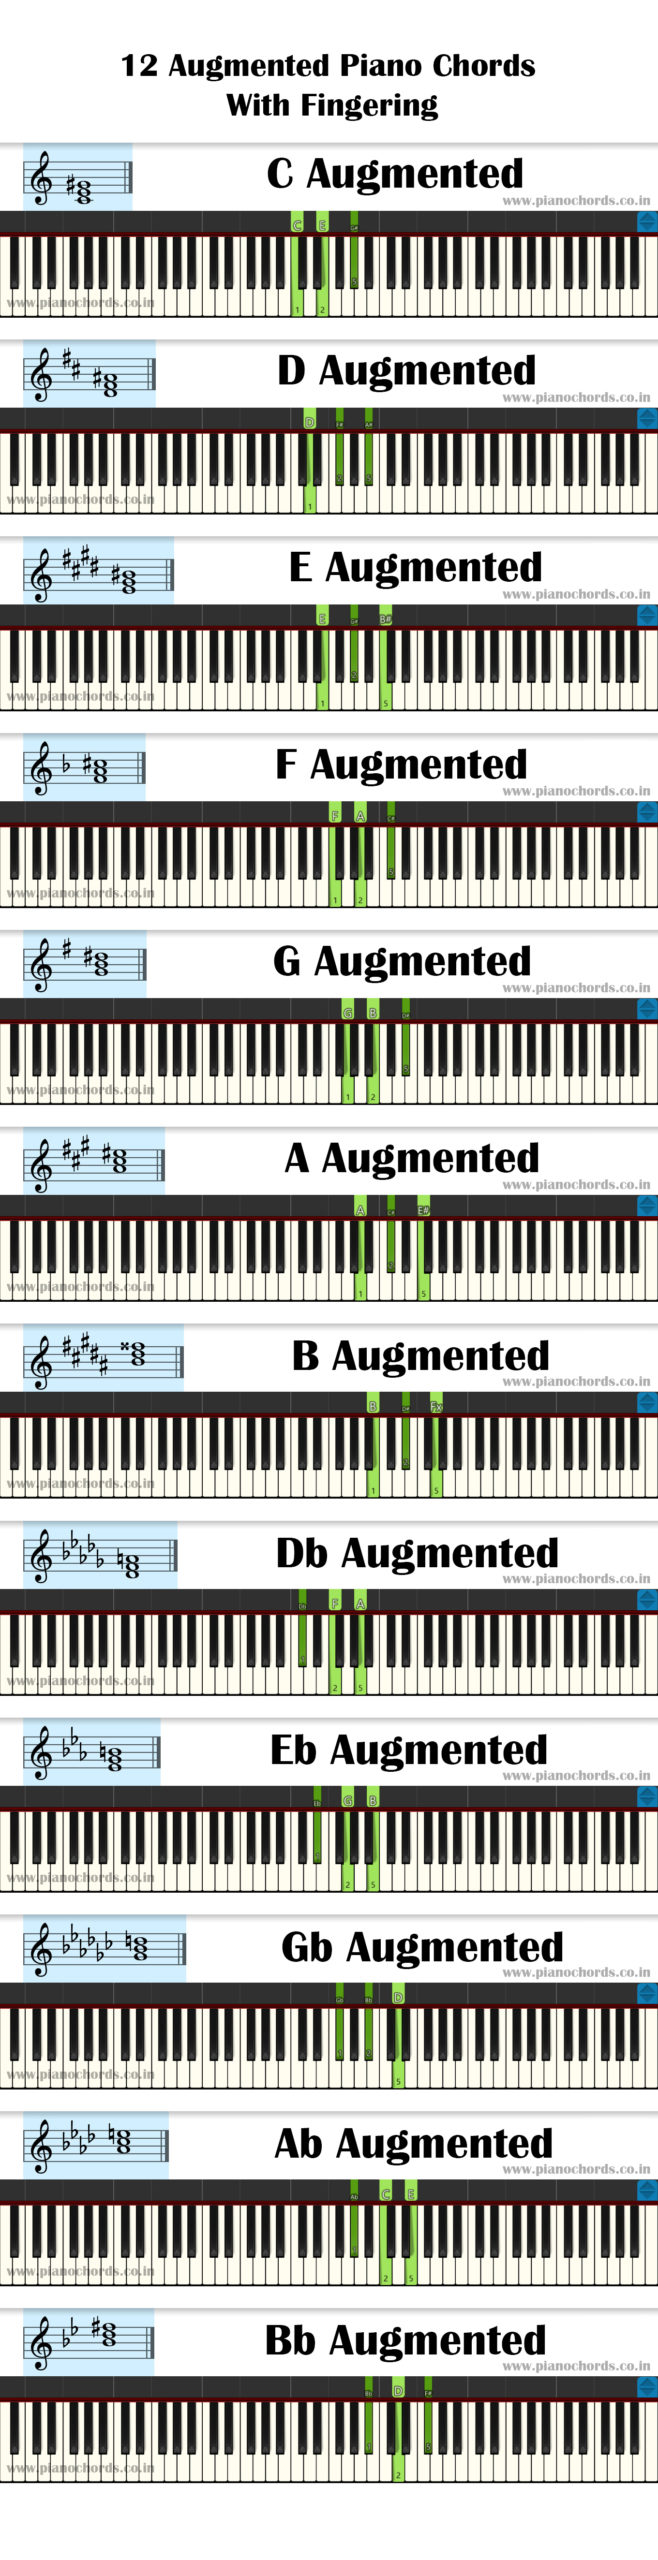 12 Augmented Piano Chords With Fingering, Diagram, Staff Notation